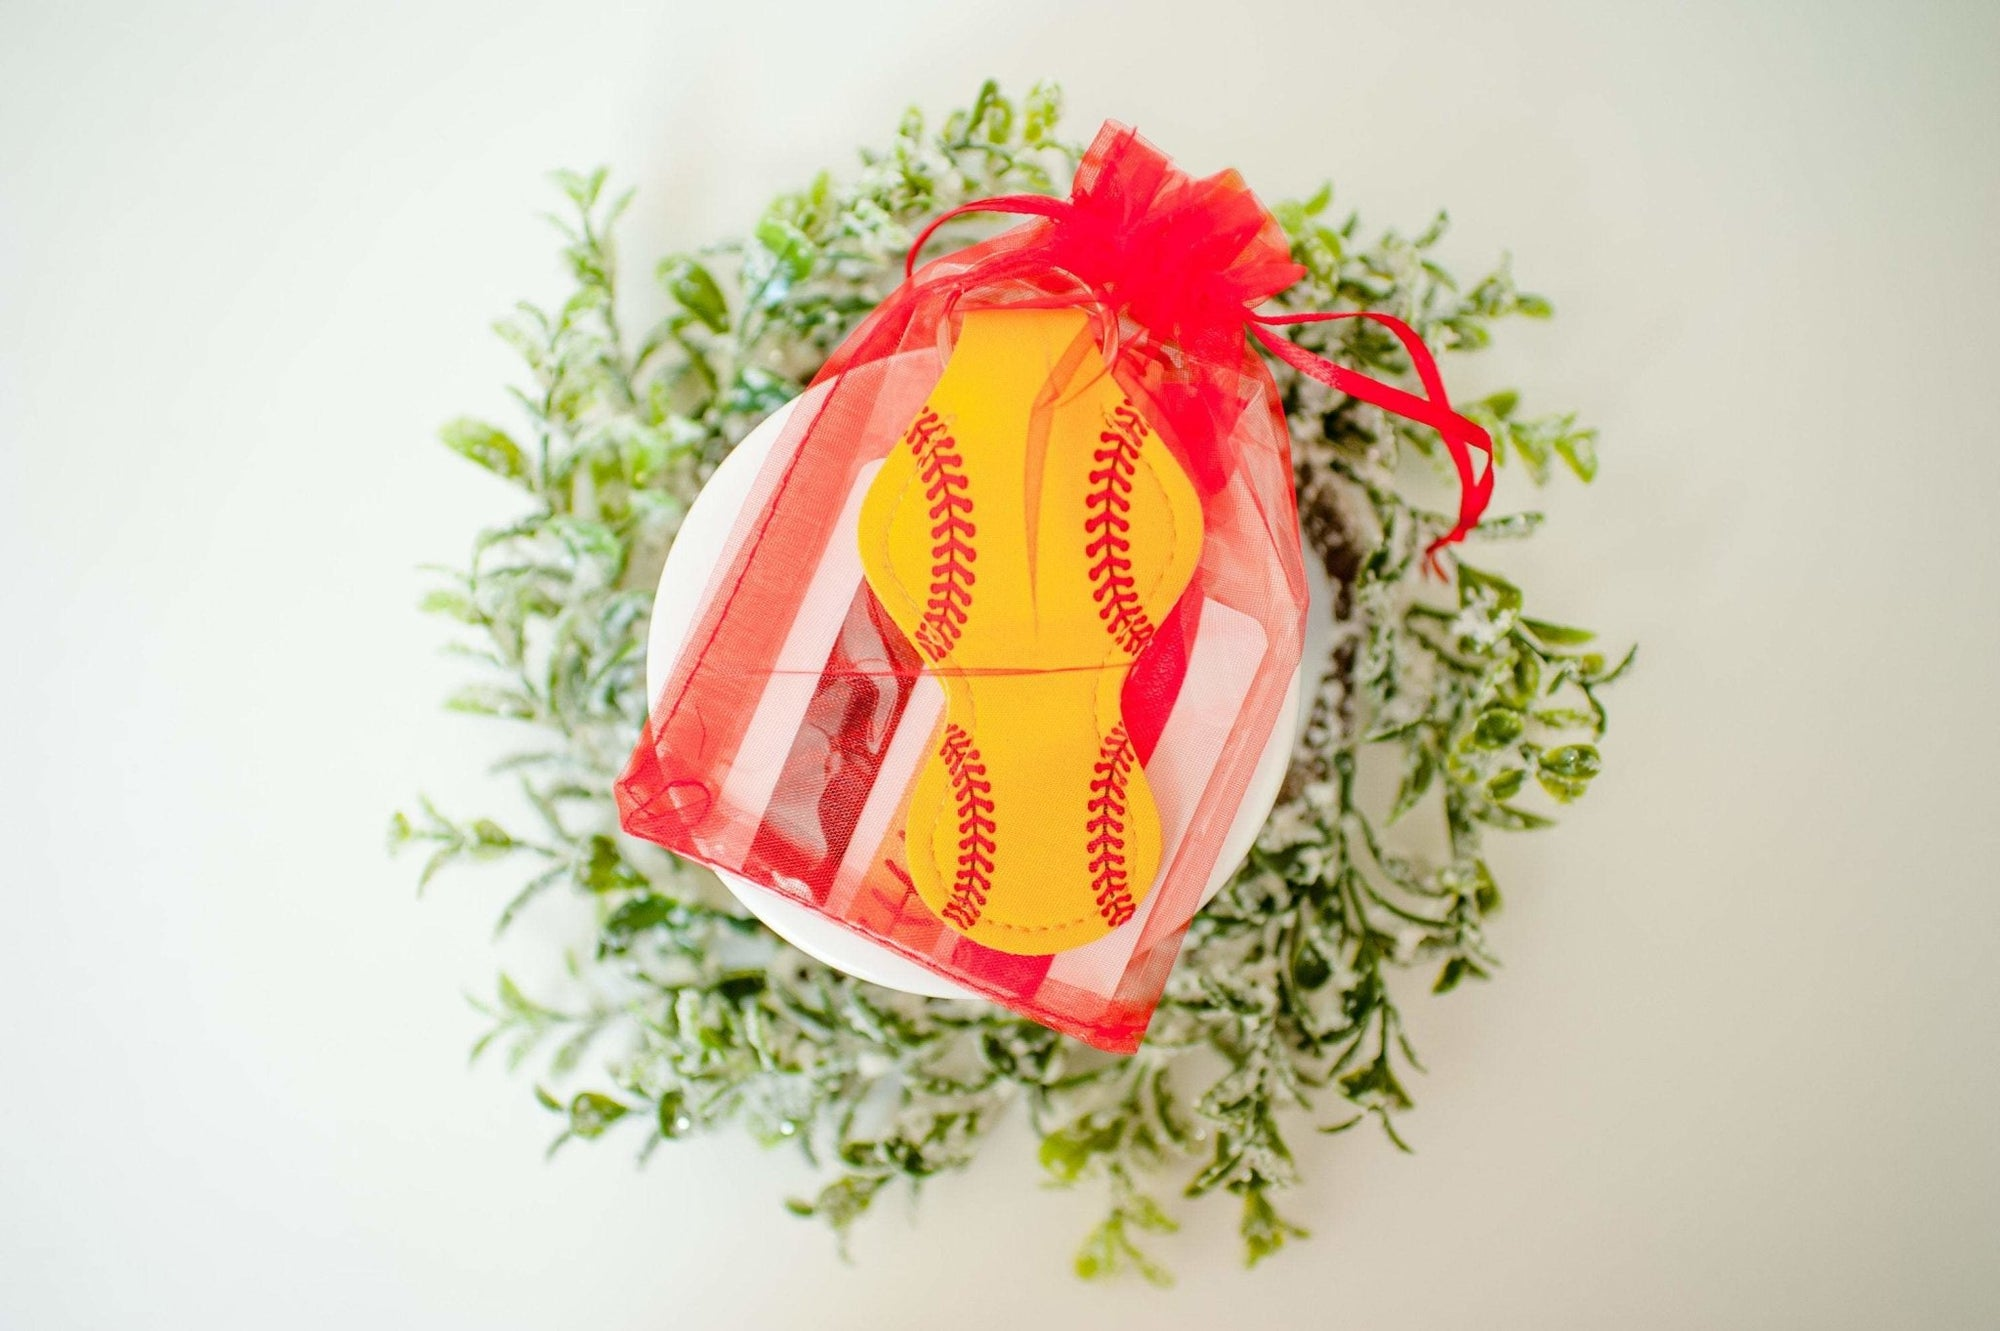 Softball Keychain and Hair Tie Set Gift for Girls Stocking Stuffer - Daisy Lane Company